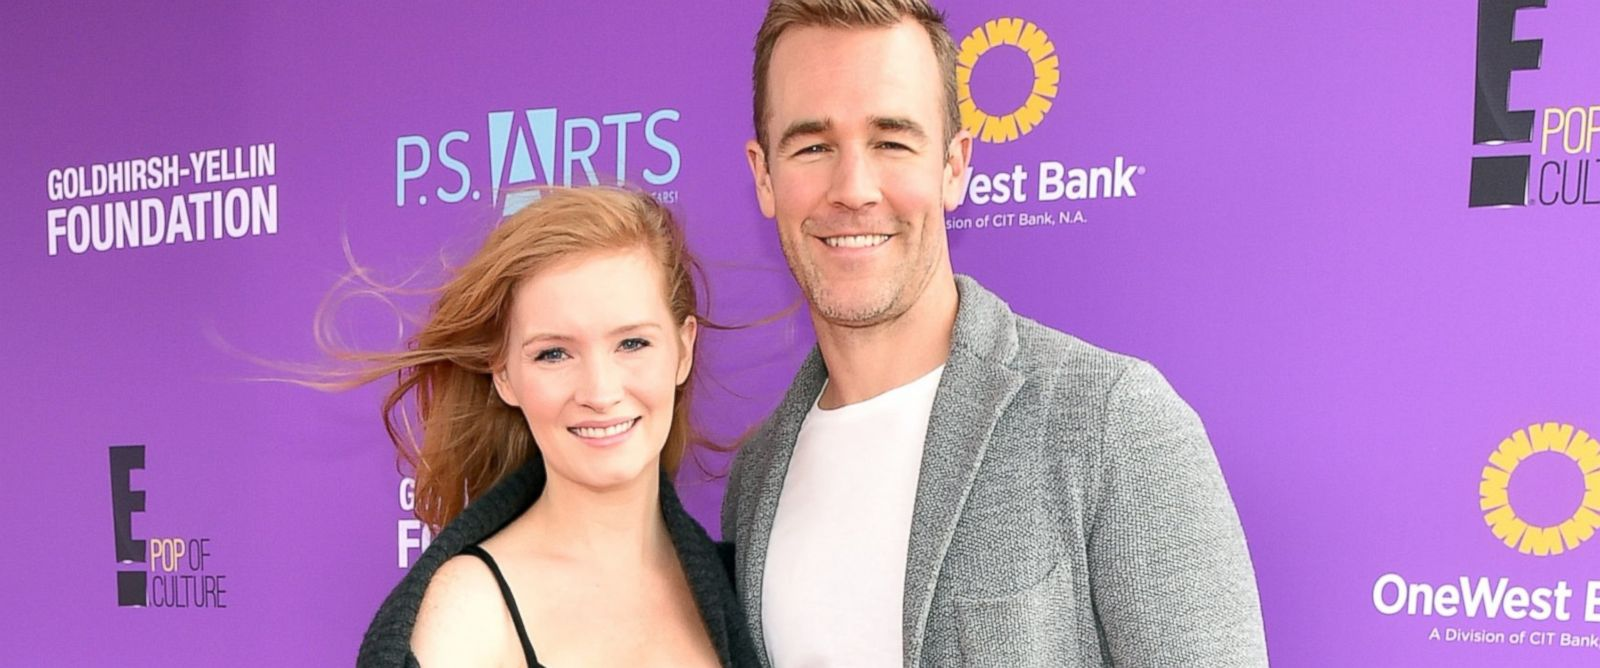 PHOTO: Kimberly Brook, left and James Van Der Beek attend Express Yourself 2015 to benefit P.S. ARTS, Nov. 15, 2015 in Santa Monica, Calif.